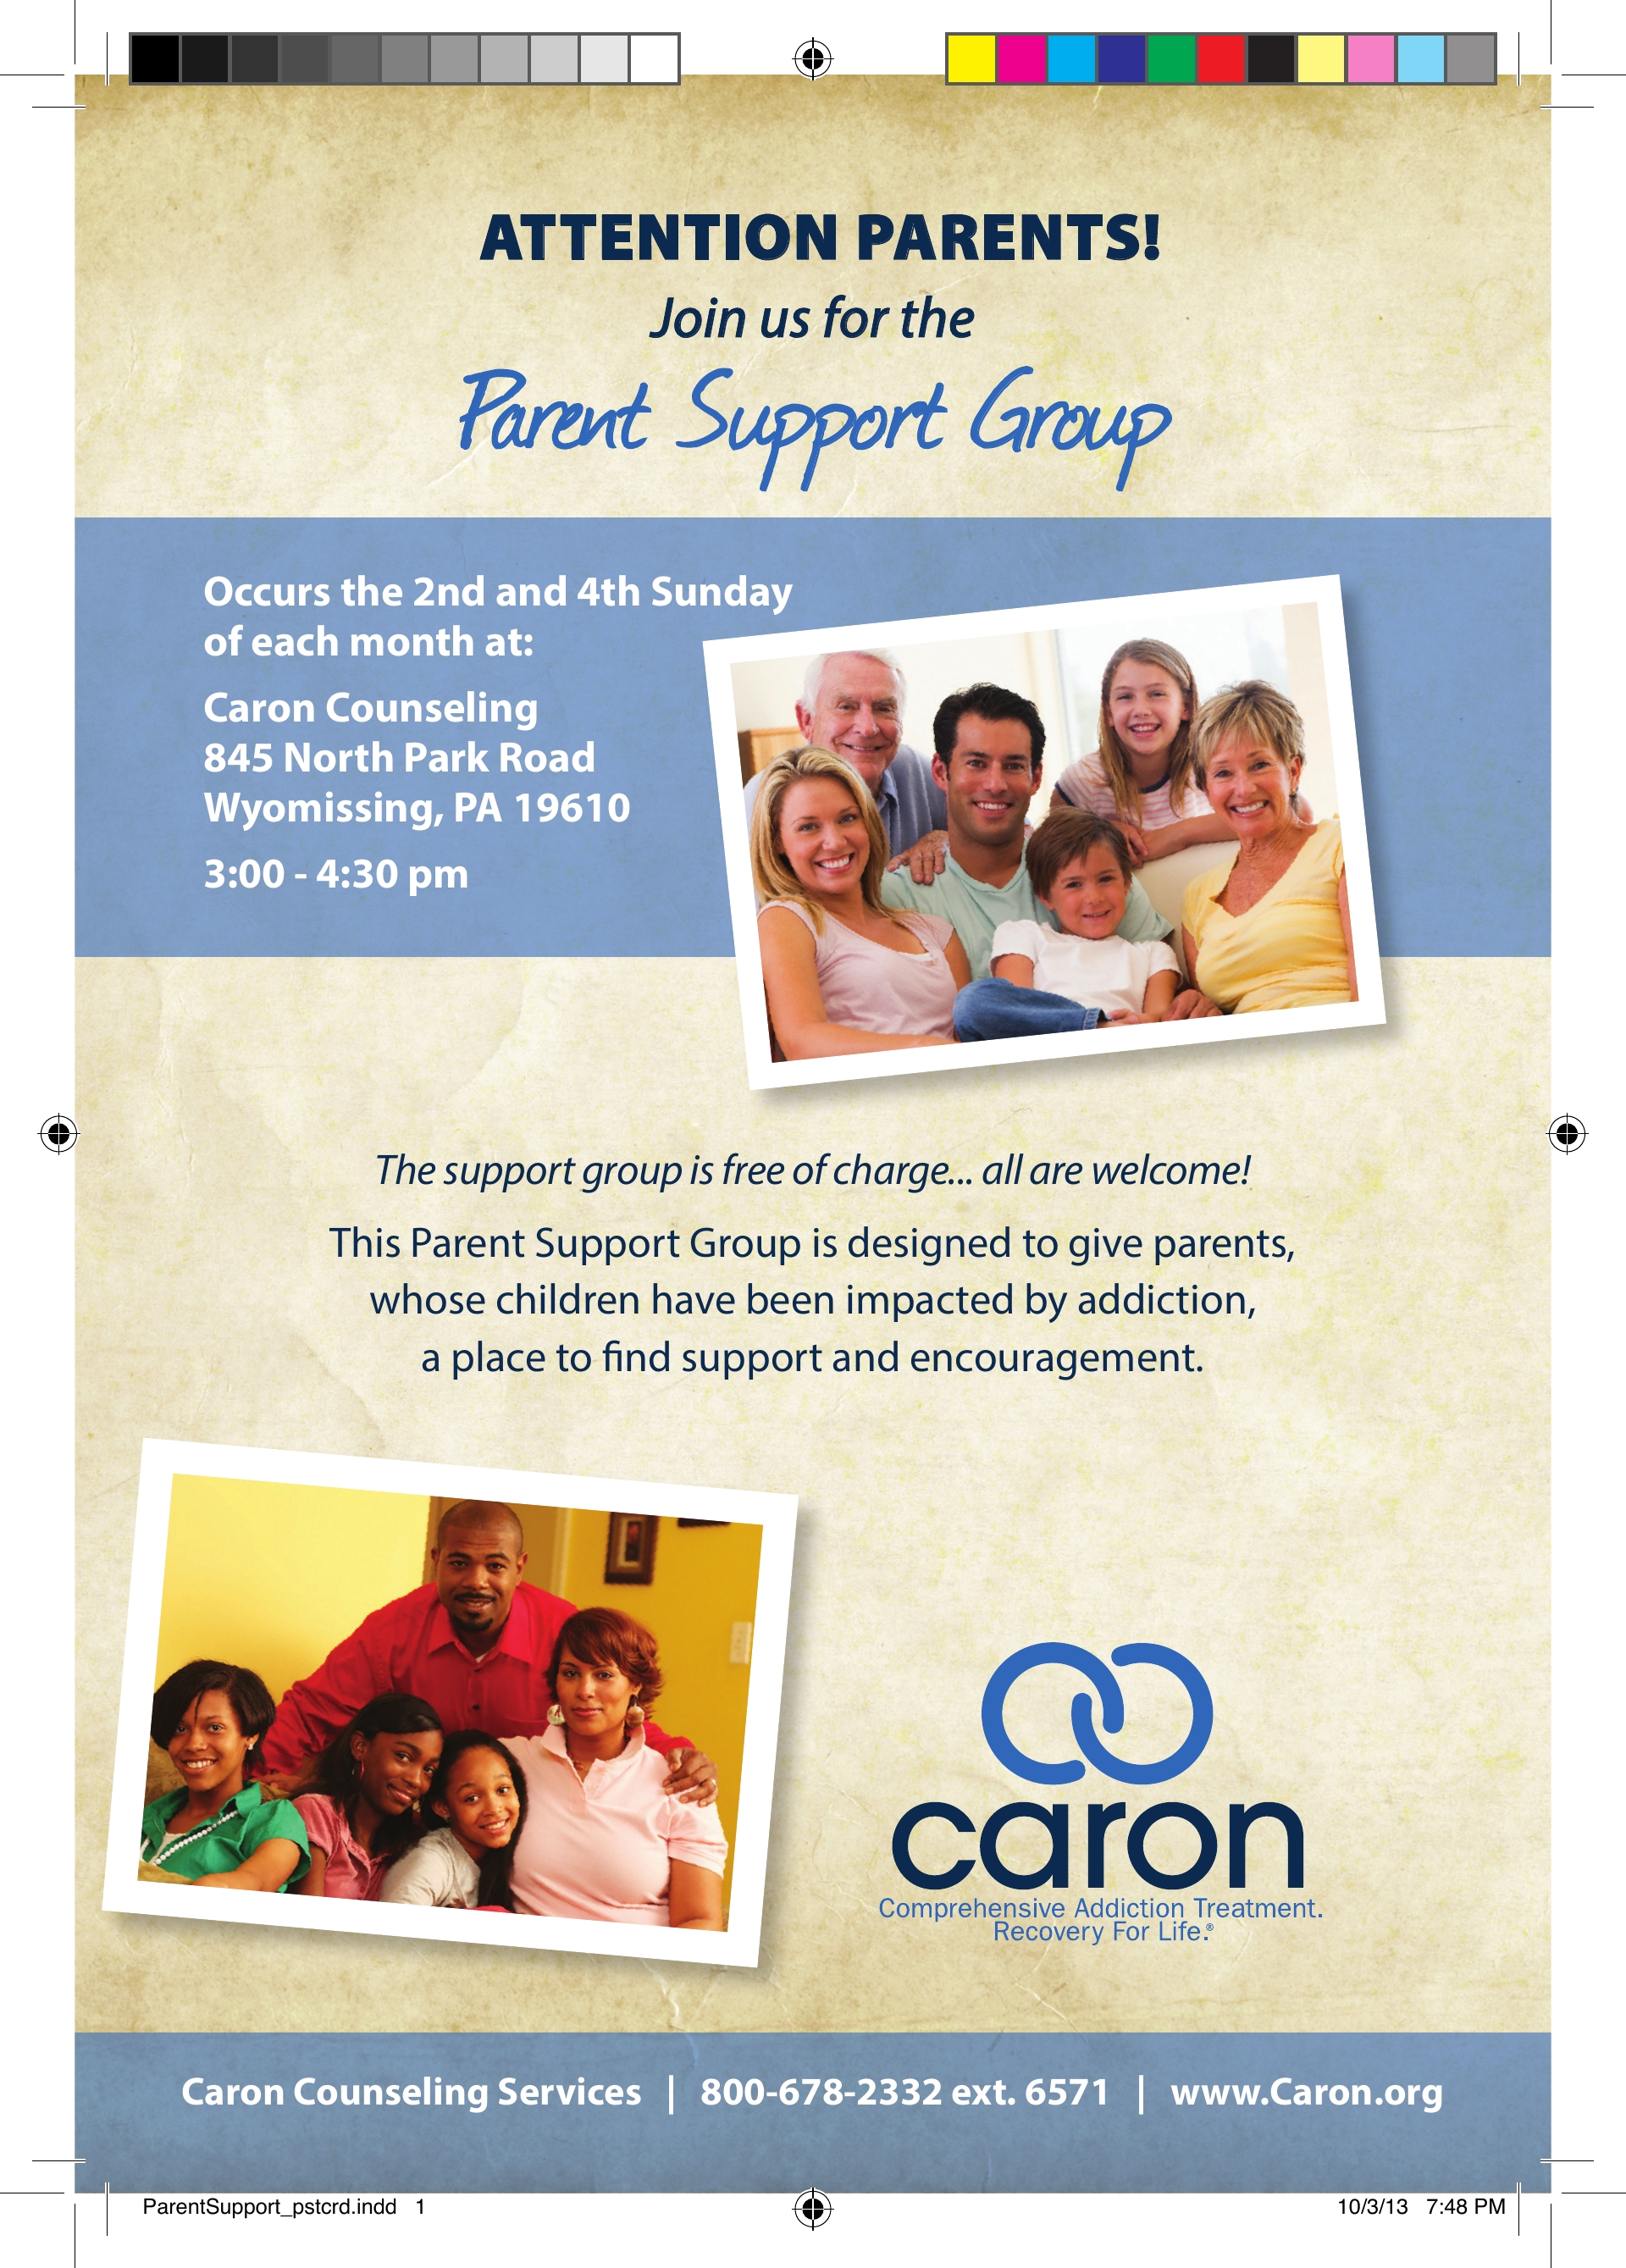 PARENT SUPPORT GROUP for those who have children impacted by addiction